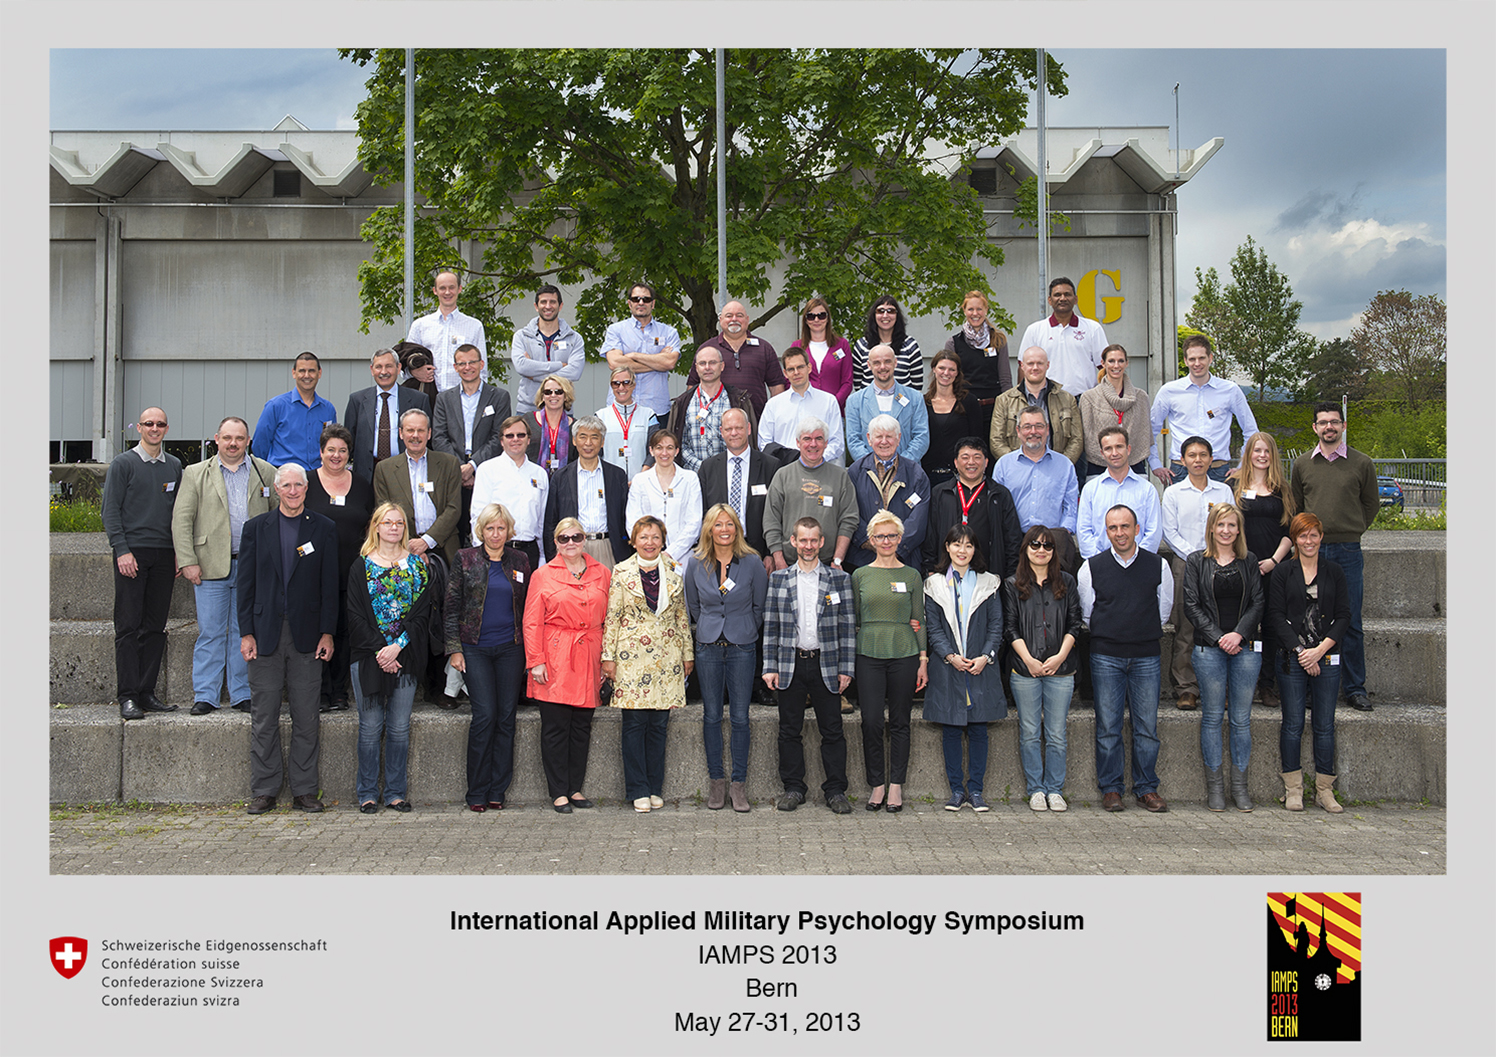 IAMPS 2013 Group Photo